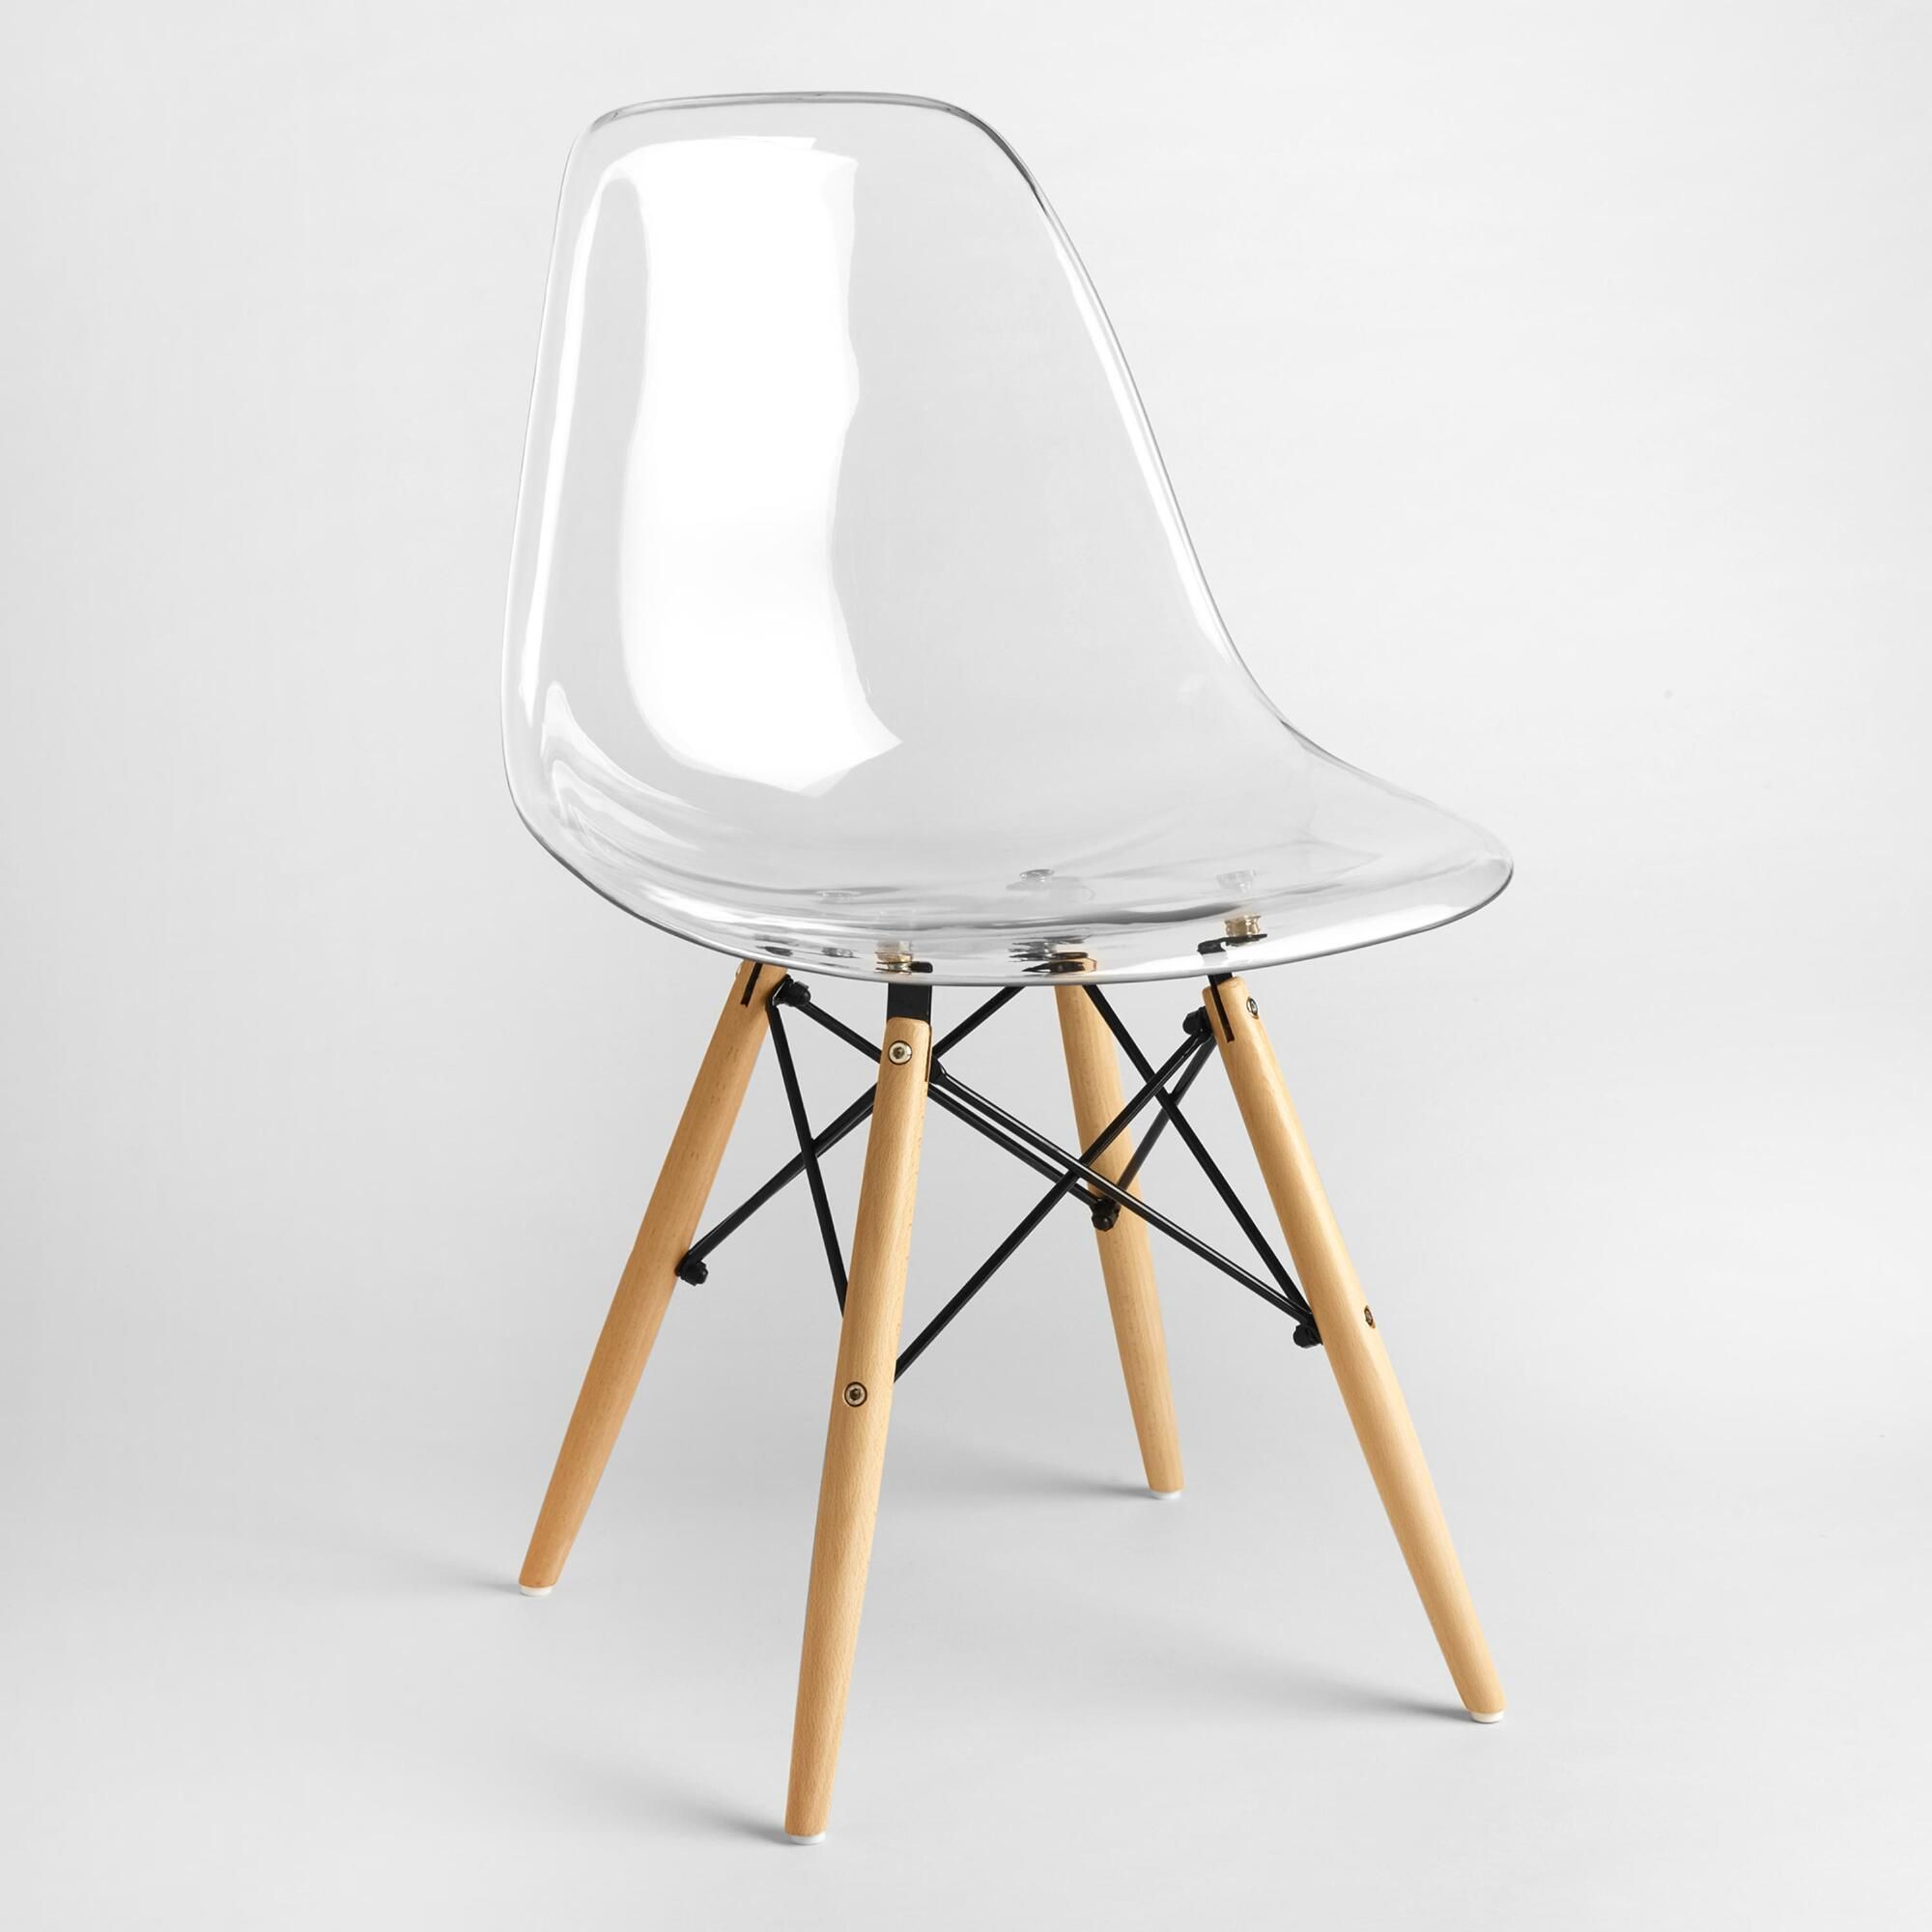 With a mid century modern aesthetic and a sculptural look our